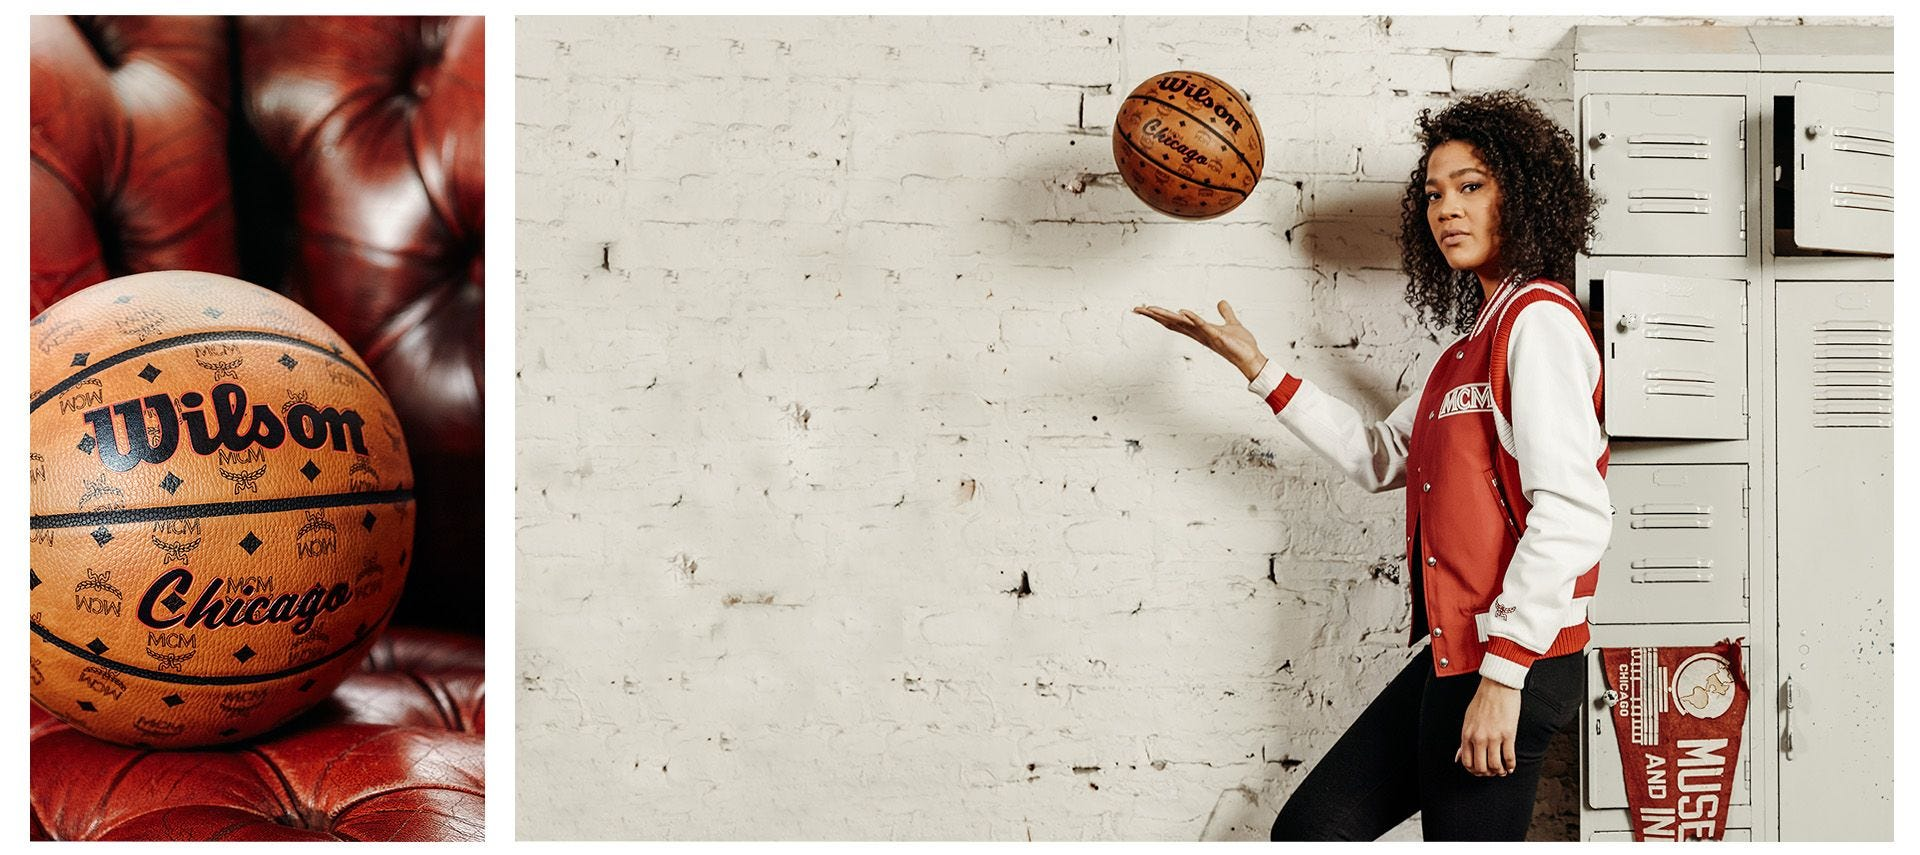 Wilson and MCM Chicago Collab Basketball